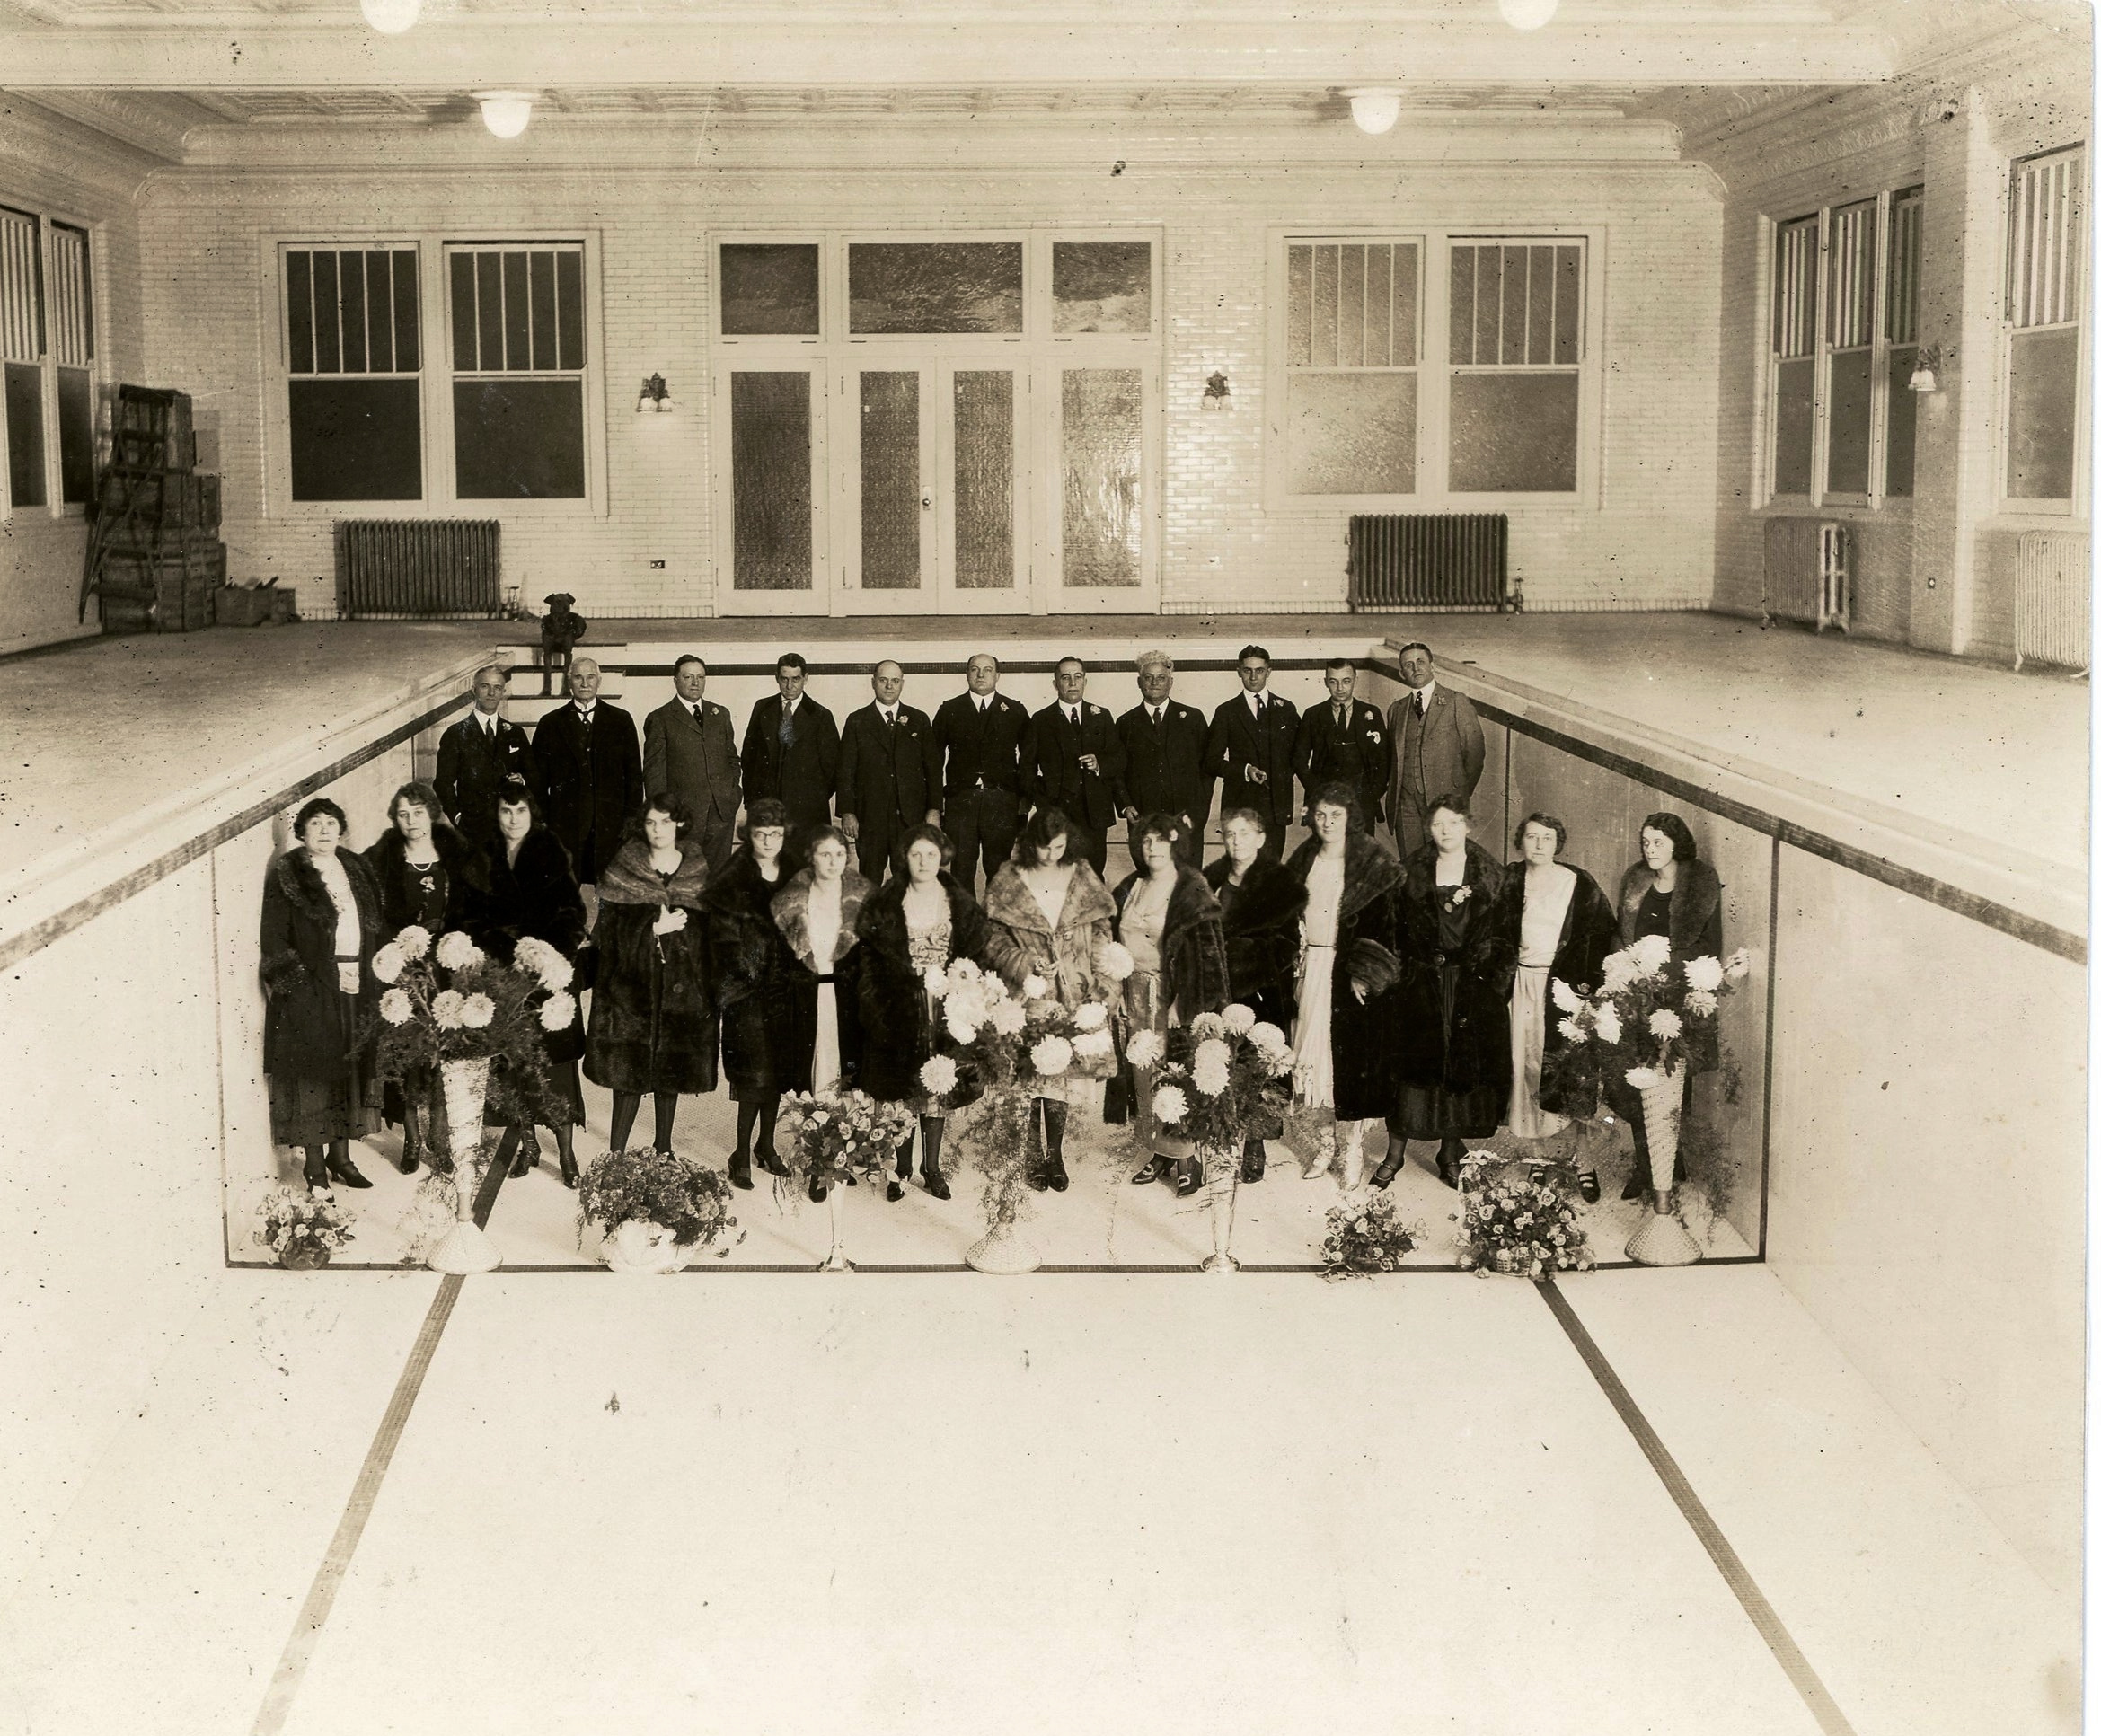 """George, Imogene, and Ruth pose with their guests for a formal portrait inside the famous """"Imogene Baths"""" prior to it opening on December 31, 1921. Reports estimate that Remus paid up to $175,000 for the Grecian swimming pool, lined with tile from Cincinnati's famous  Rookwood Pottery ."""